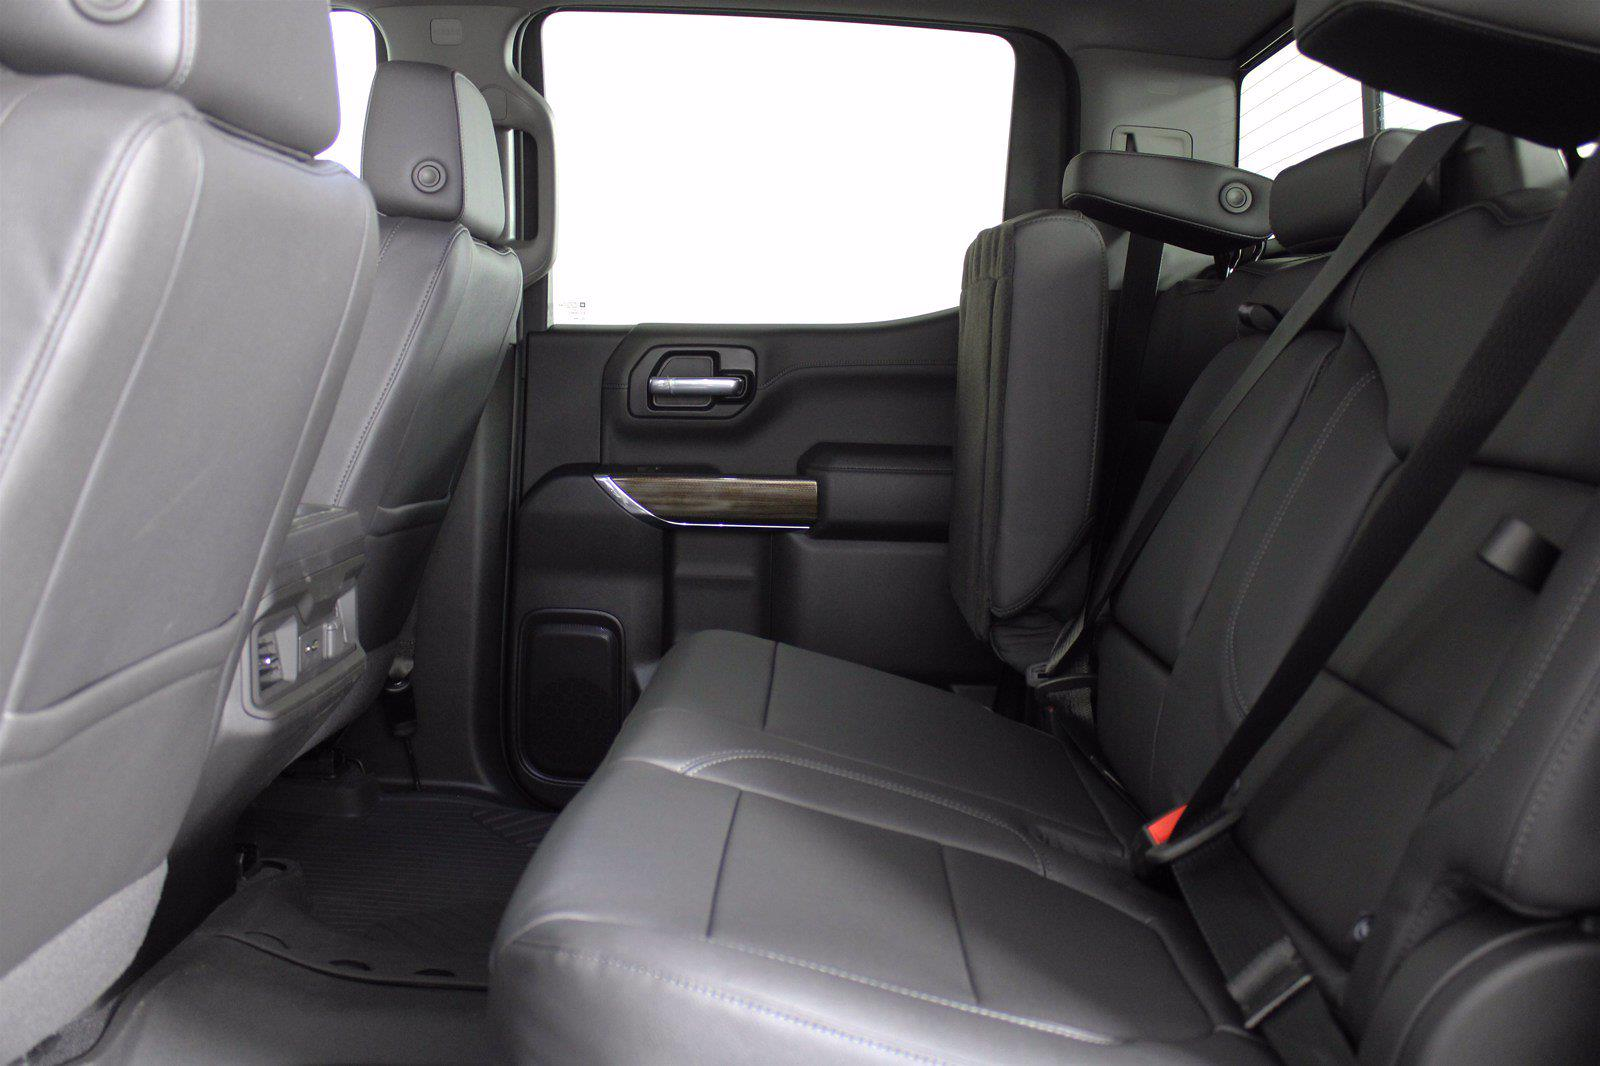 2021 Chevrolet Silverado 1500 Crew Cab 4x4, Pickup #D110467 - photo 14